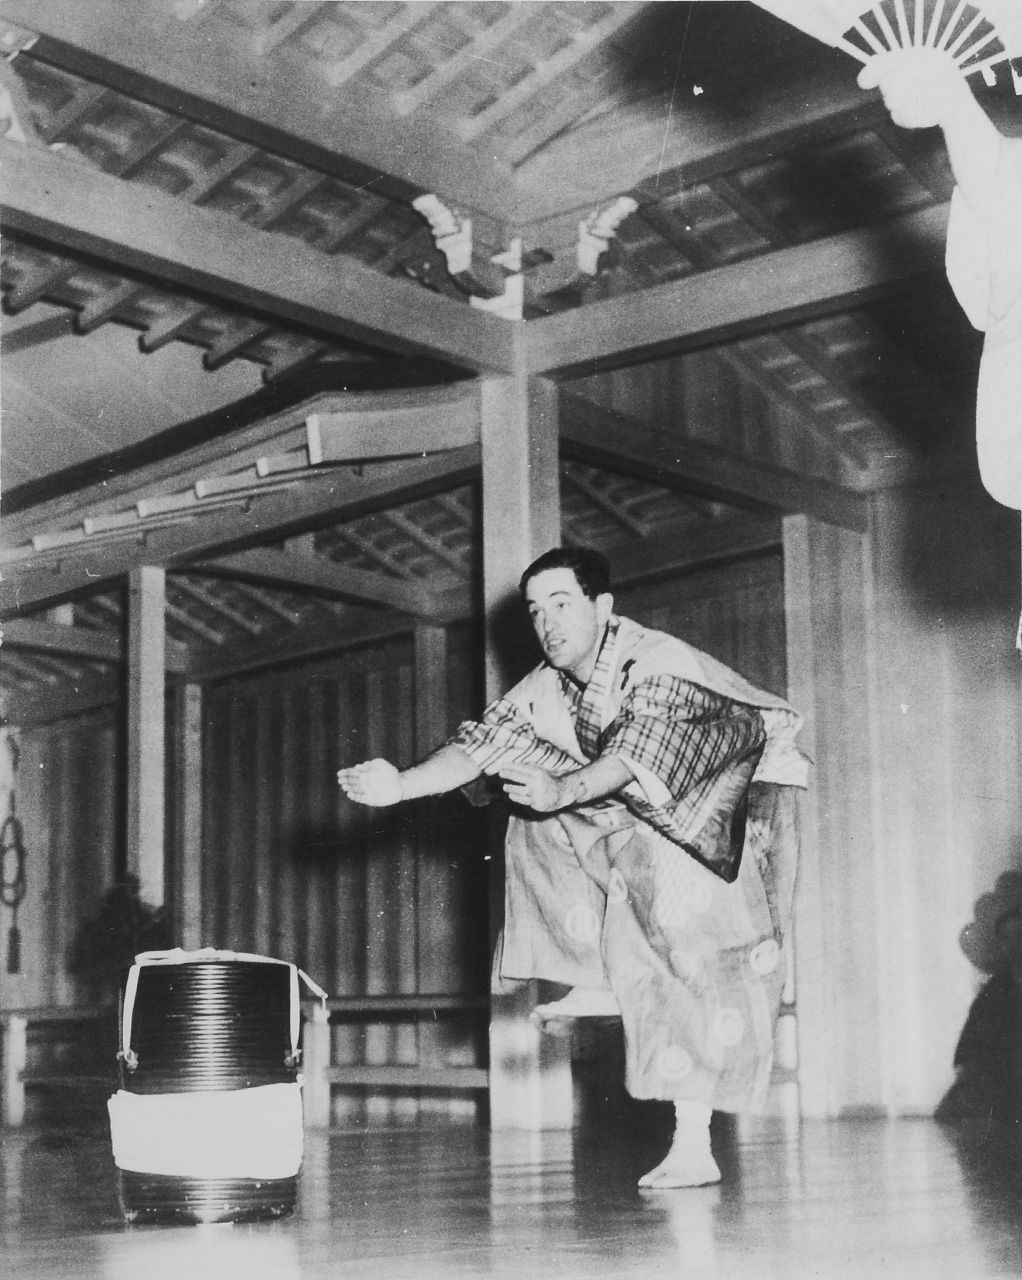 Donald Keene performs as the servant Tarōkaja in a kyōgen performance in Tokyo on September 13, 1956. (© Watabe Yūkichi; courtesy Donald Keene Center Kashiwazaki)